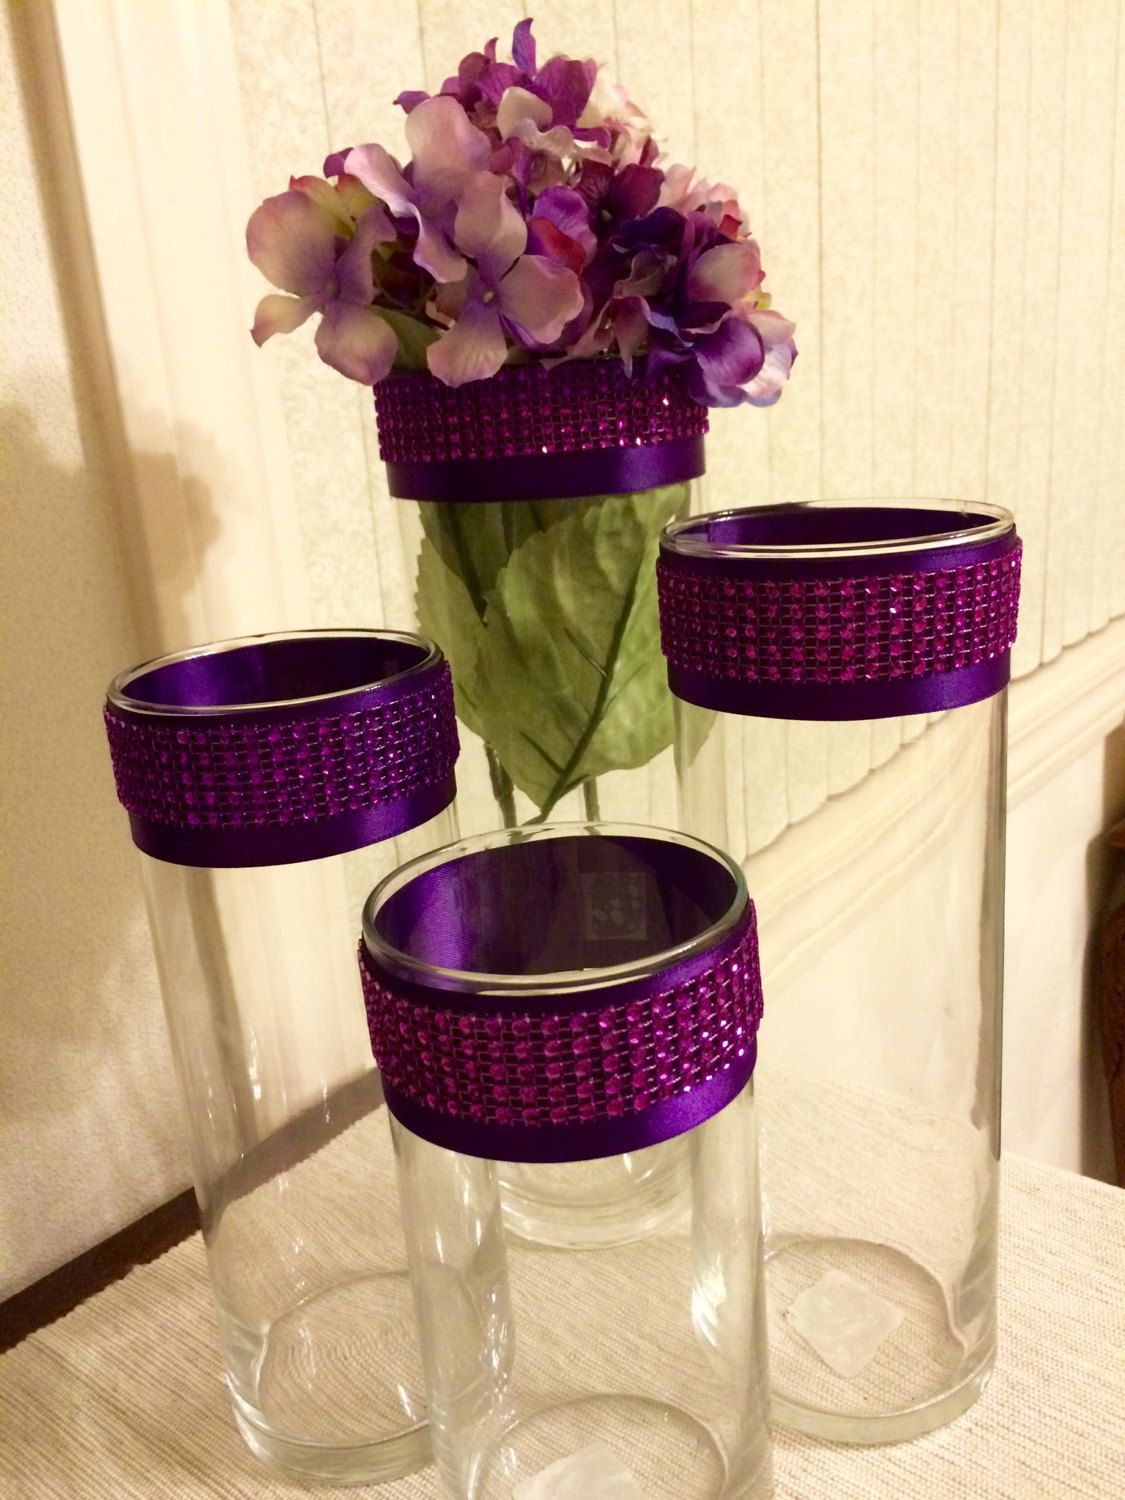 4 purple bling cylinder centerpiece vases by fancyitup1 on etsy 4 purple bling cylinder centerpiece vases by fancyitup1 on etsy reviewsmspy